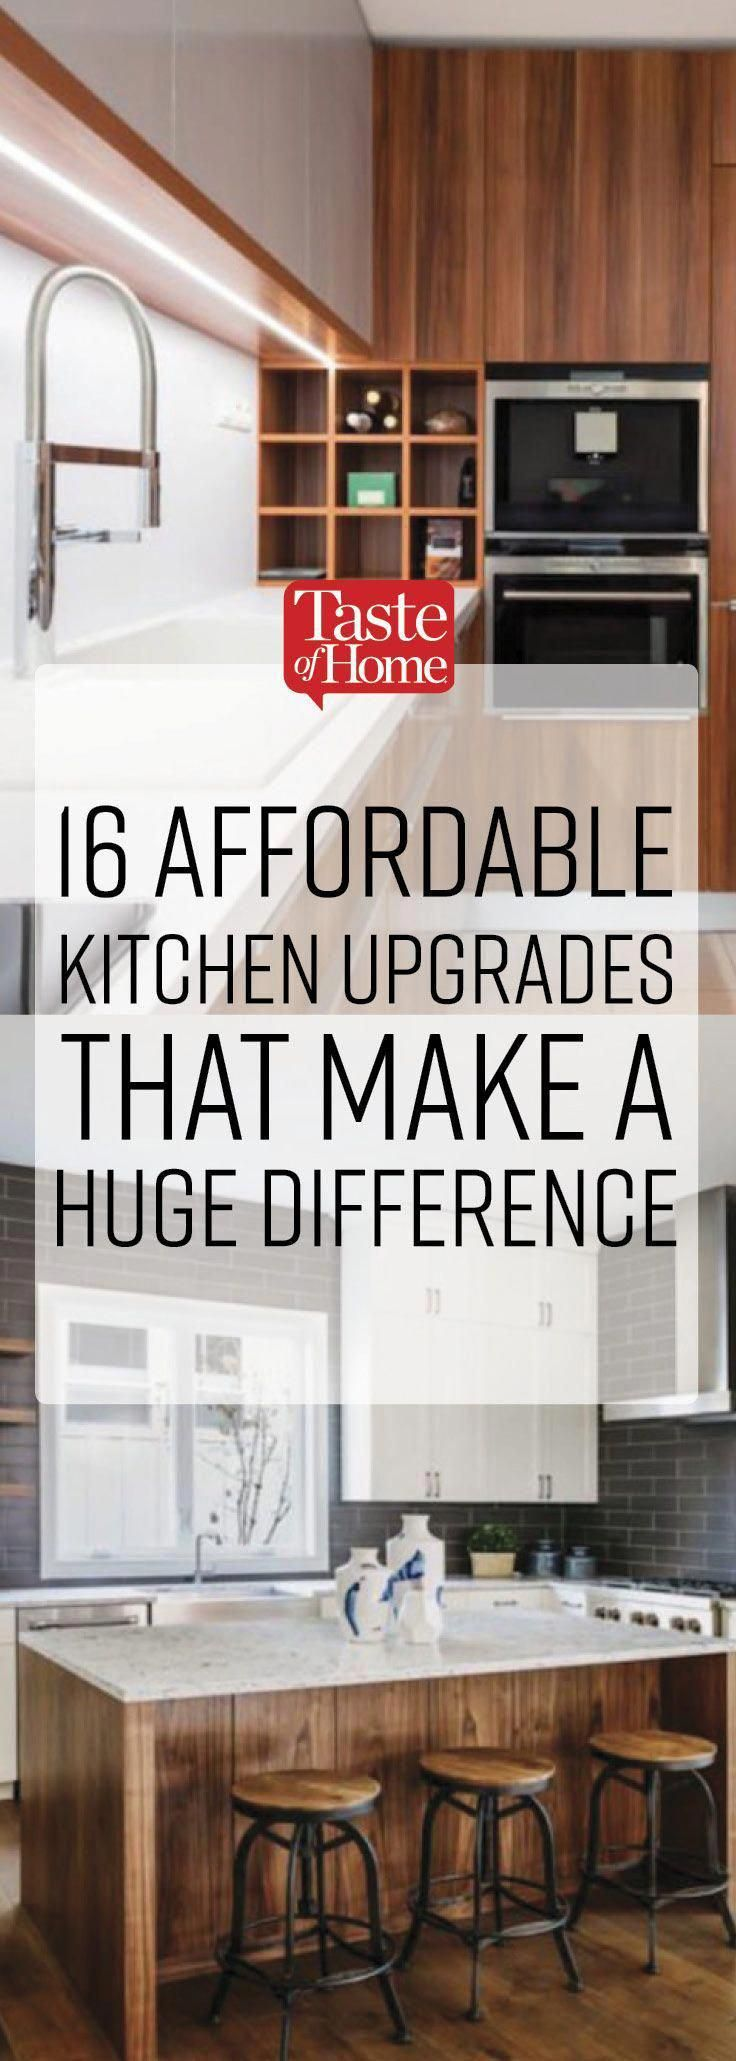 16 Low Cost Kitchen Upgrades That Make A Huge Difference